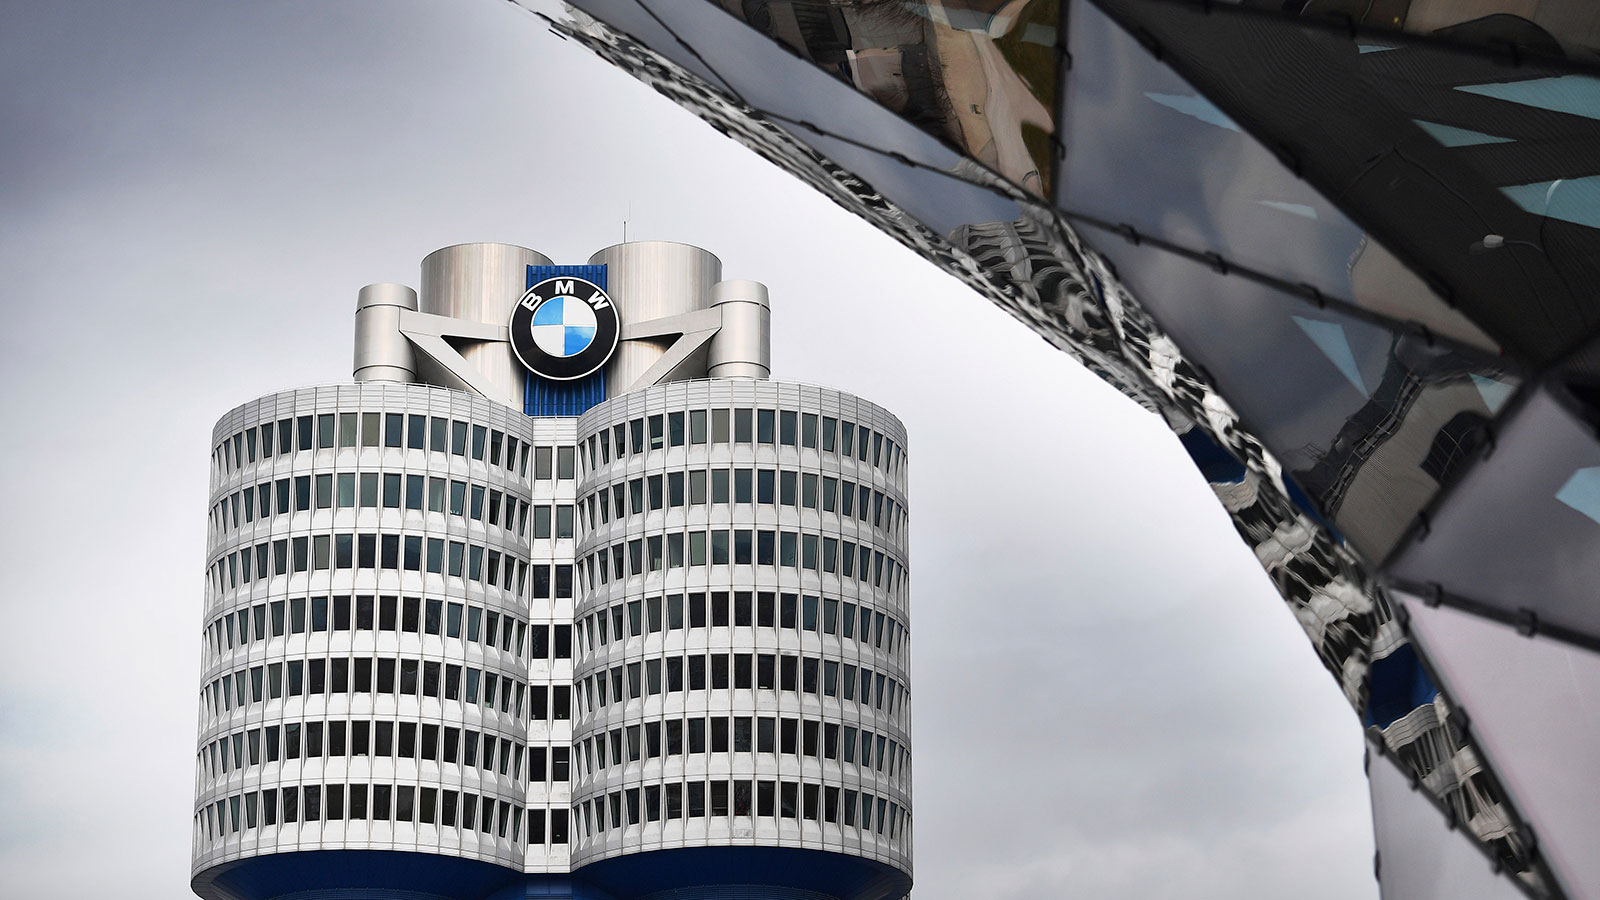 The BMW corporate headquarters is seen in this file photo in Munich.